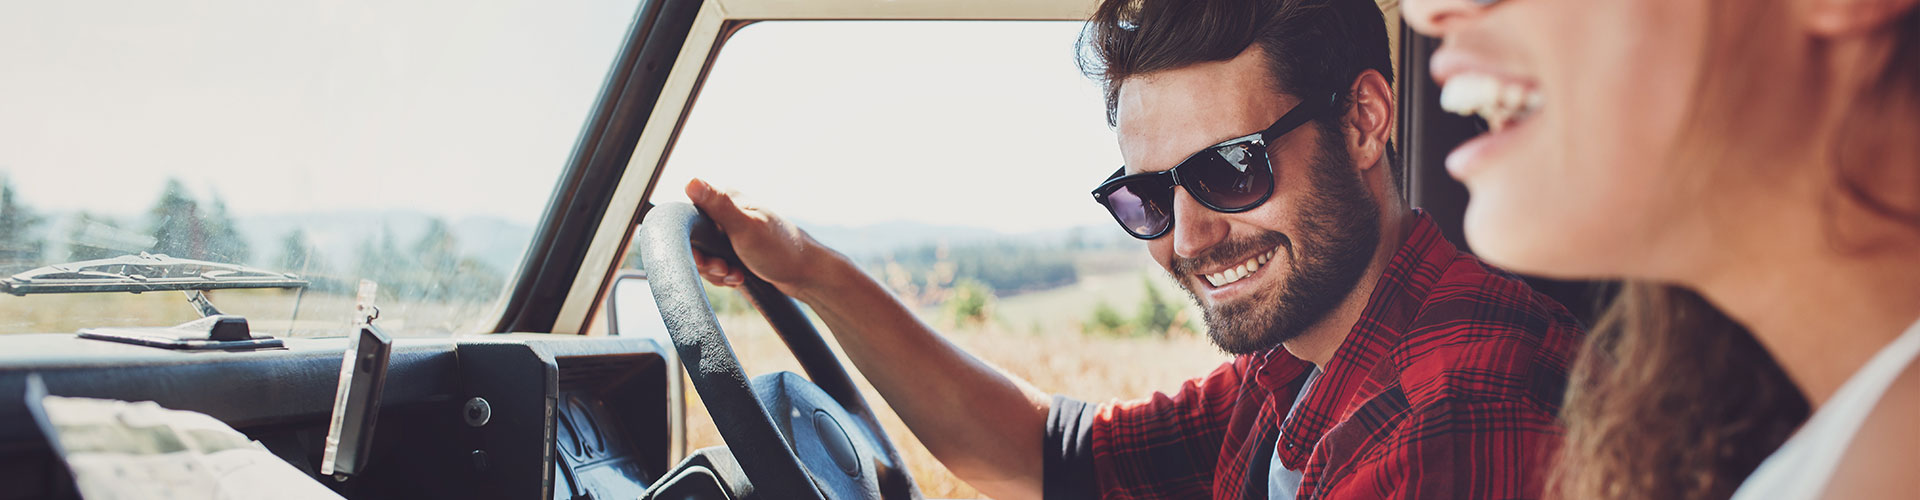 Tips for Traveling by Car